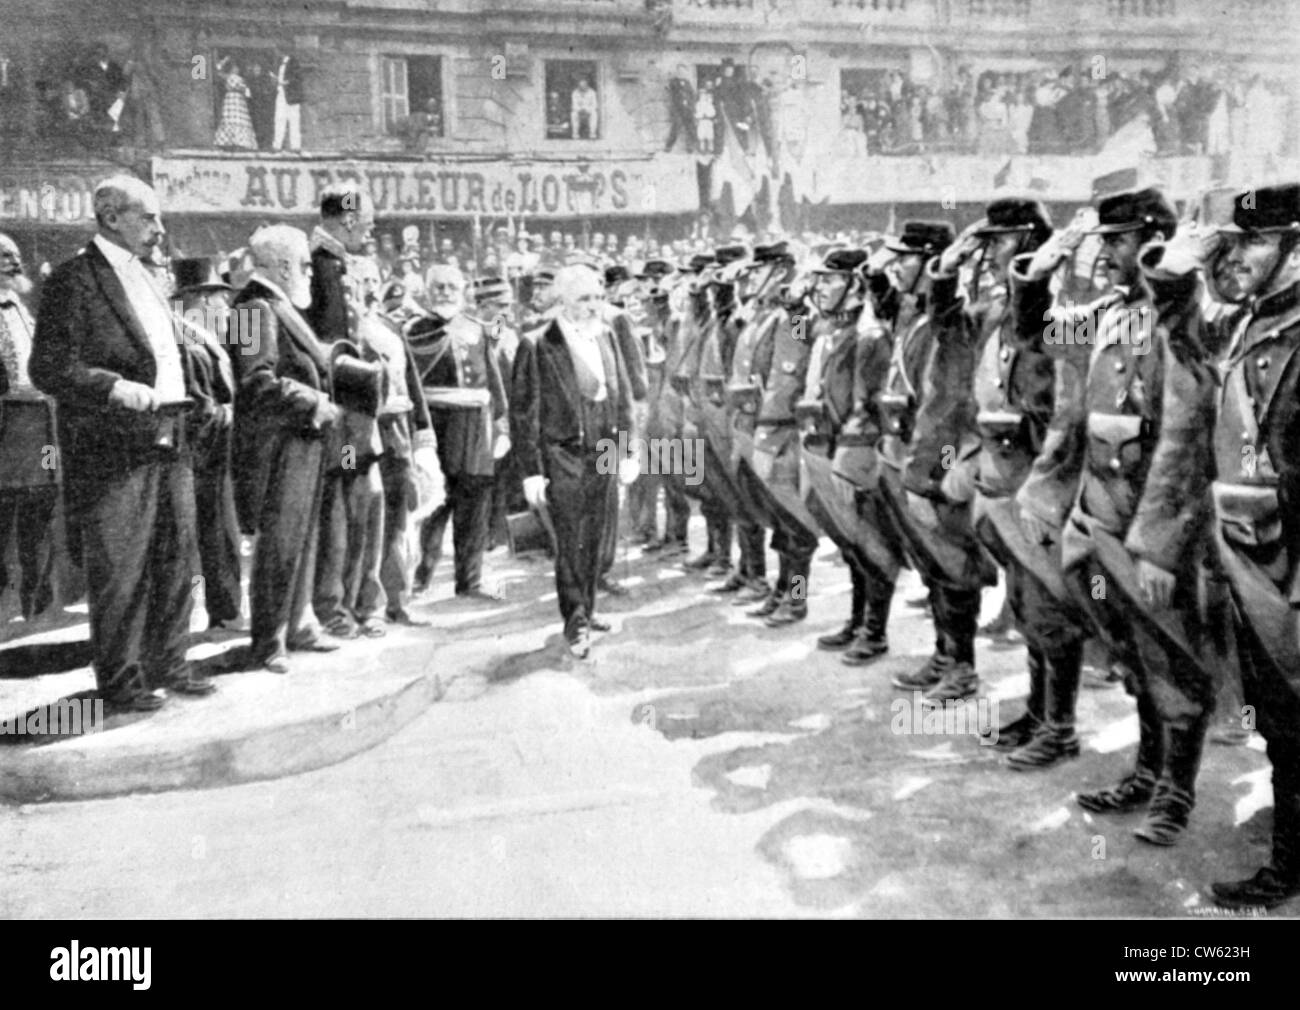 Boxer Rebellion. President Loubet inspecting troops of the Chinese Expeditionary Corps in Marseilles (1900) - Stock Image